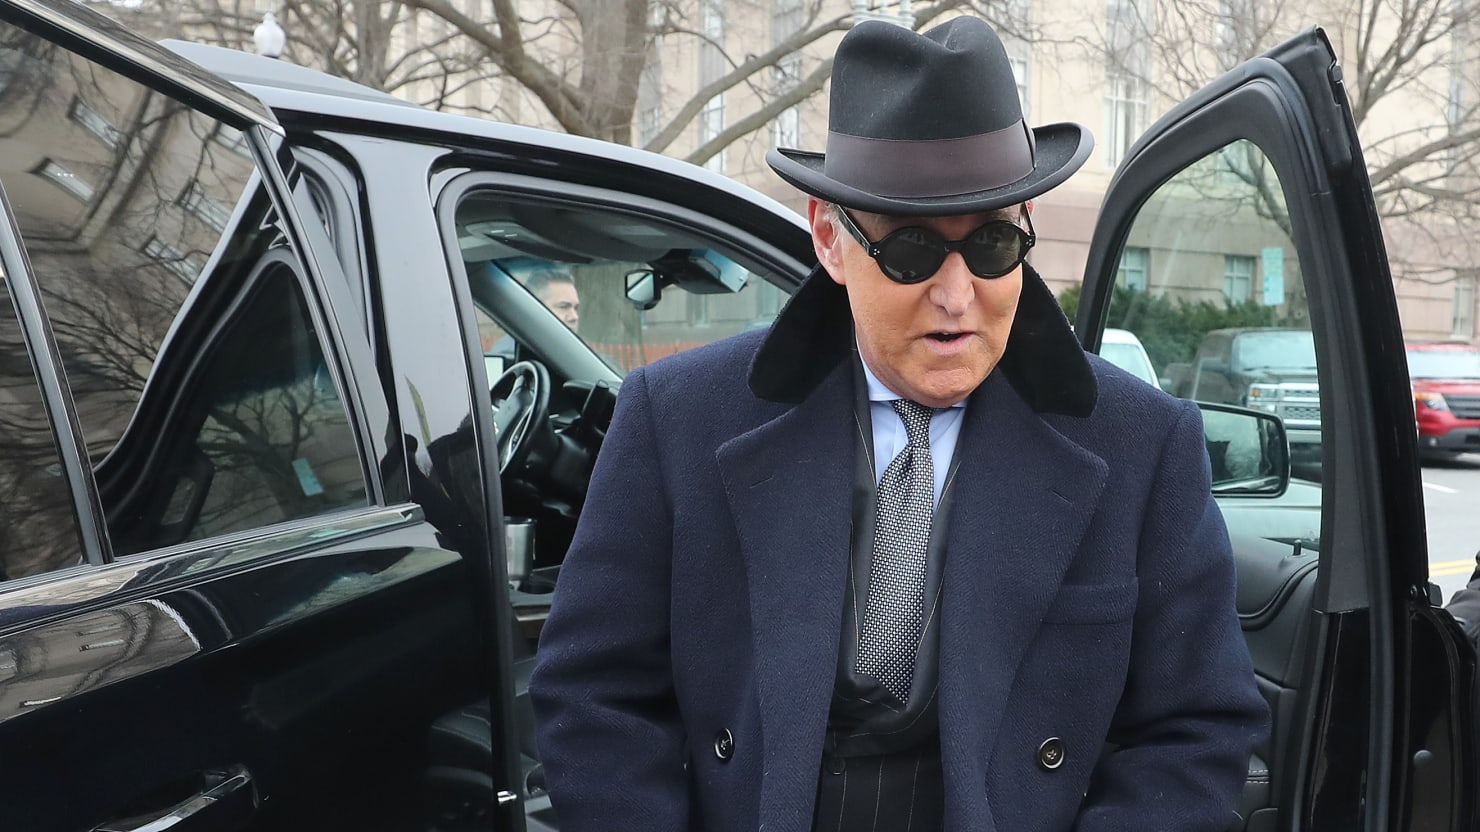 Judge Denies Roger Stone's Bid to Disqualify Her, Dismisses It as a PR Stunt